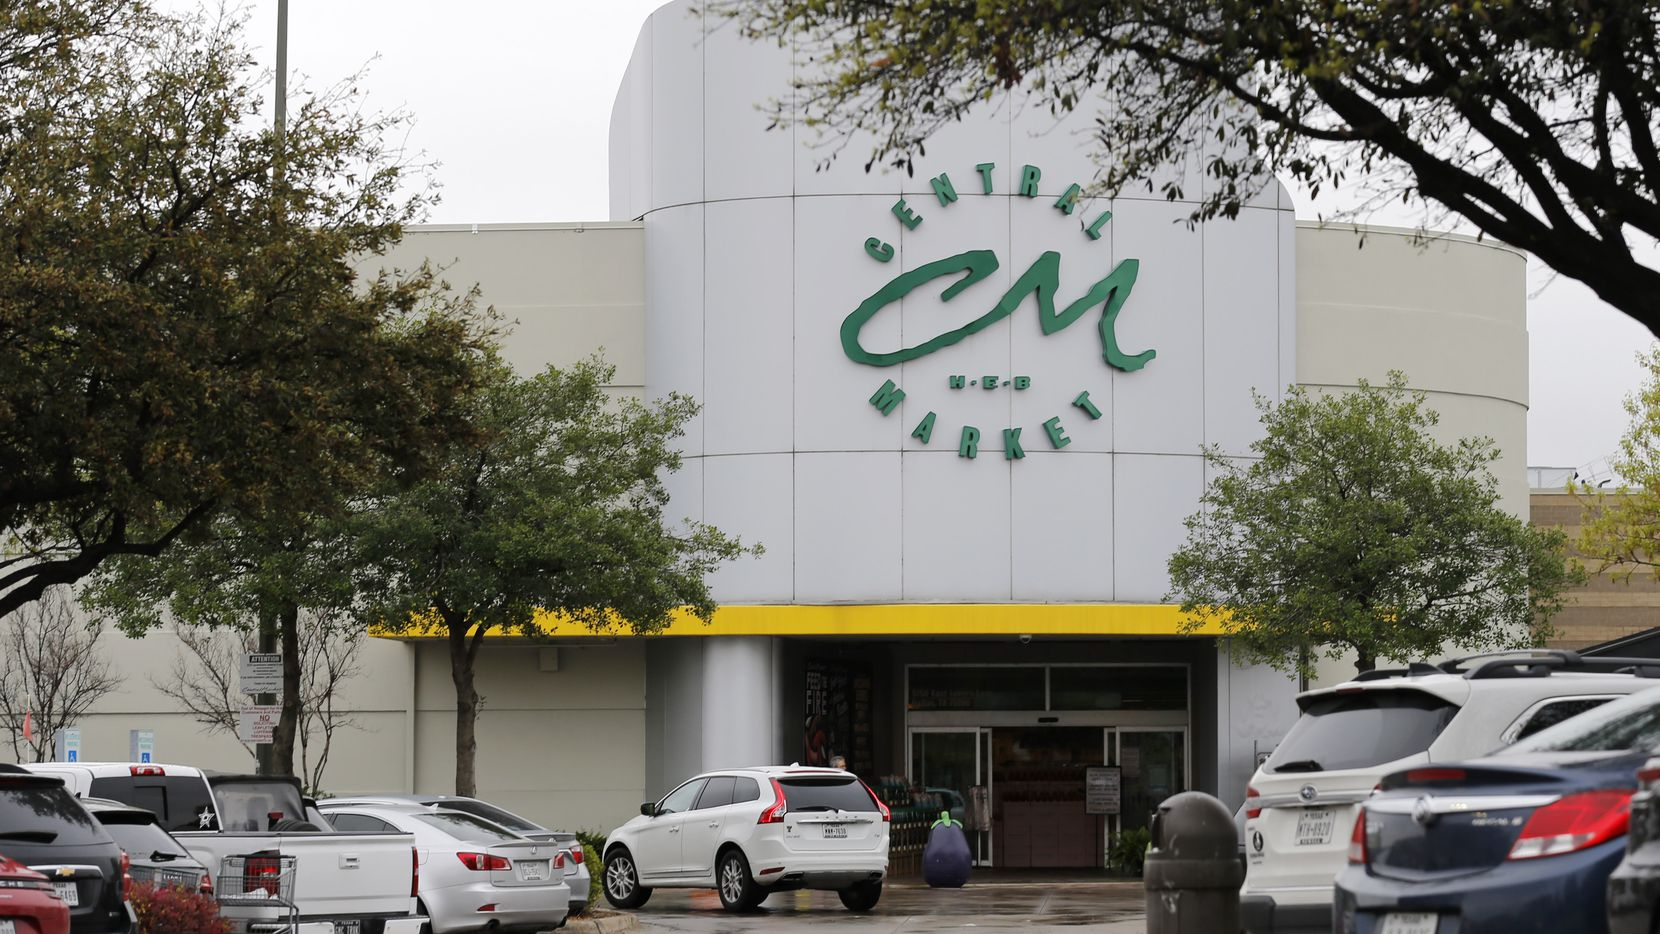 The Central Market parking lot off of Lovers Lane in Dallas on Saturday. Shopping for staples has increased at grocery stores due to the coronavirus.